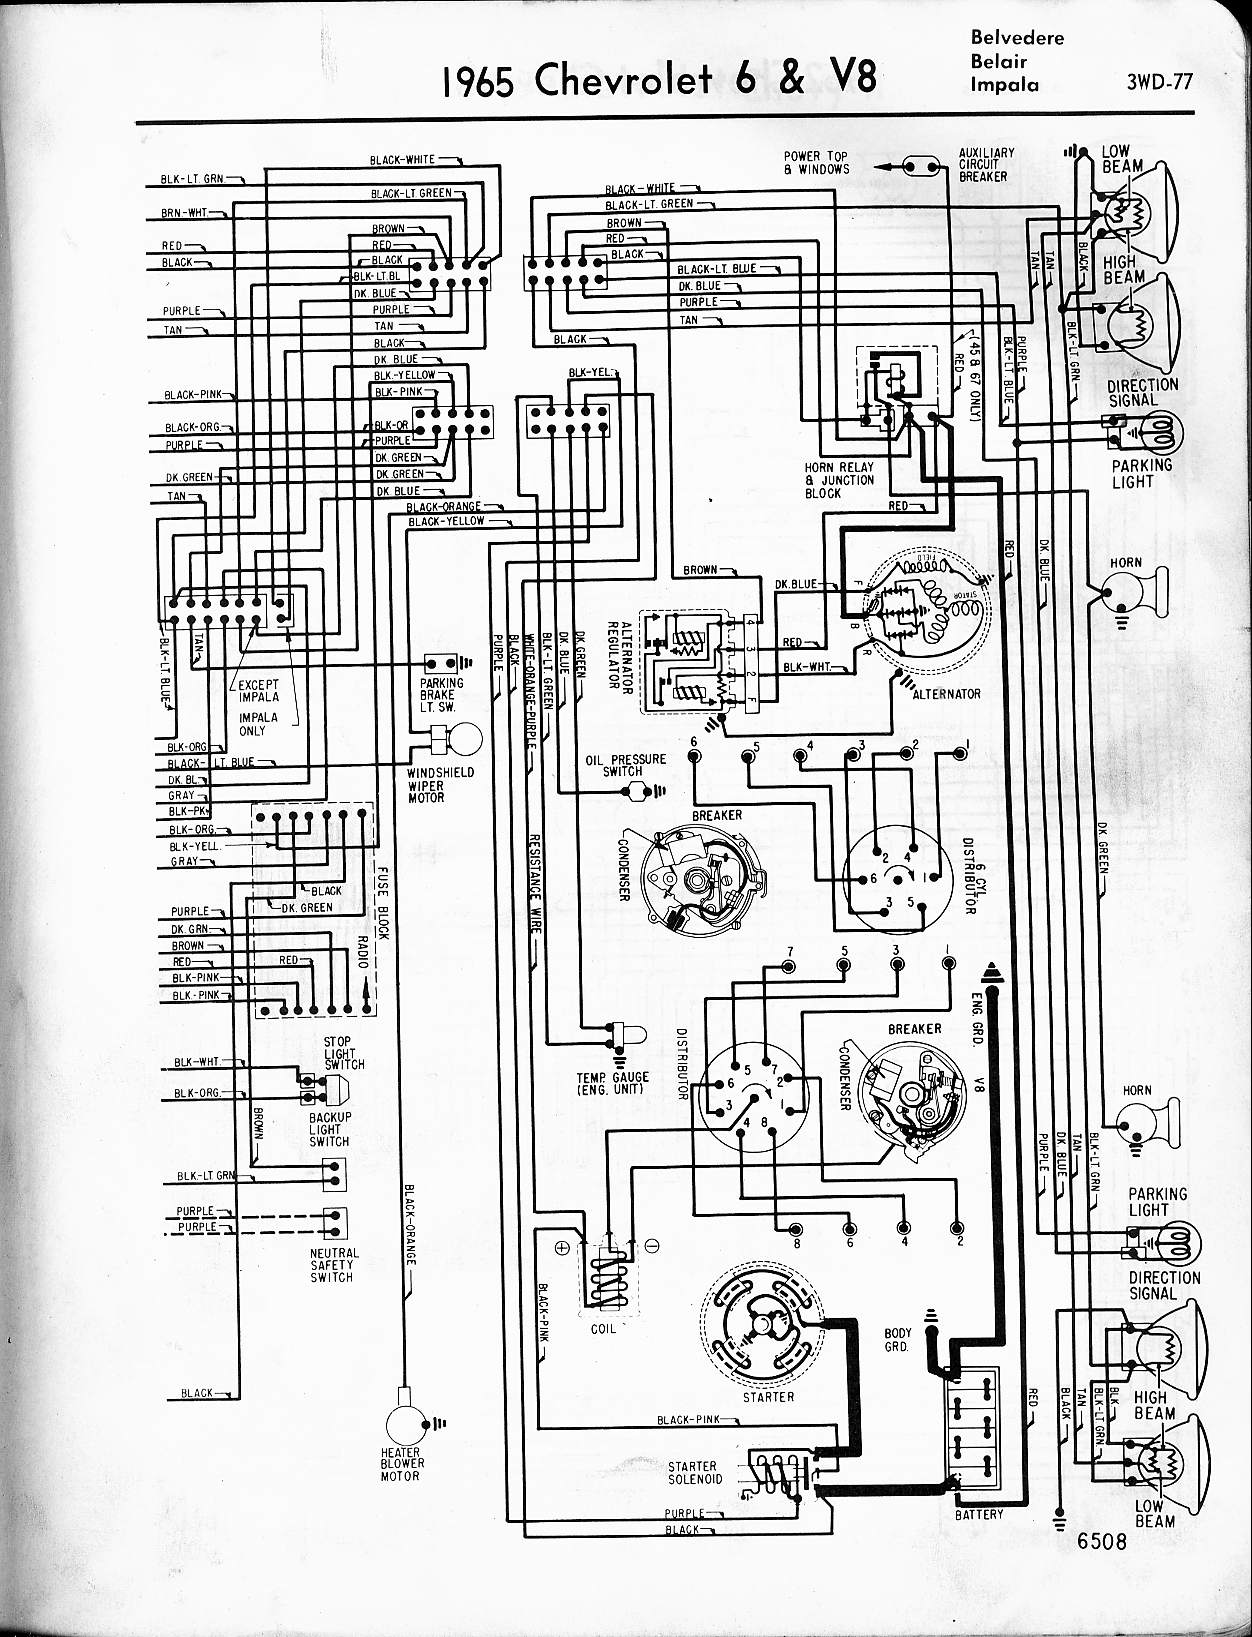 1965 Impala Wiring Diagram Schematic 2000 Chevy Silverado Ke Light Switch